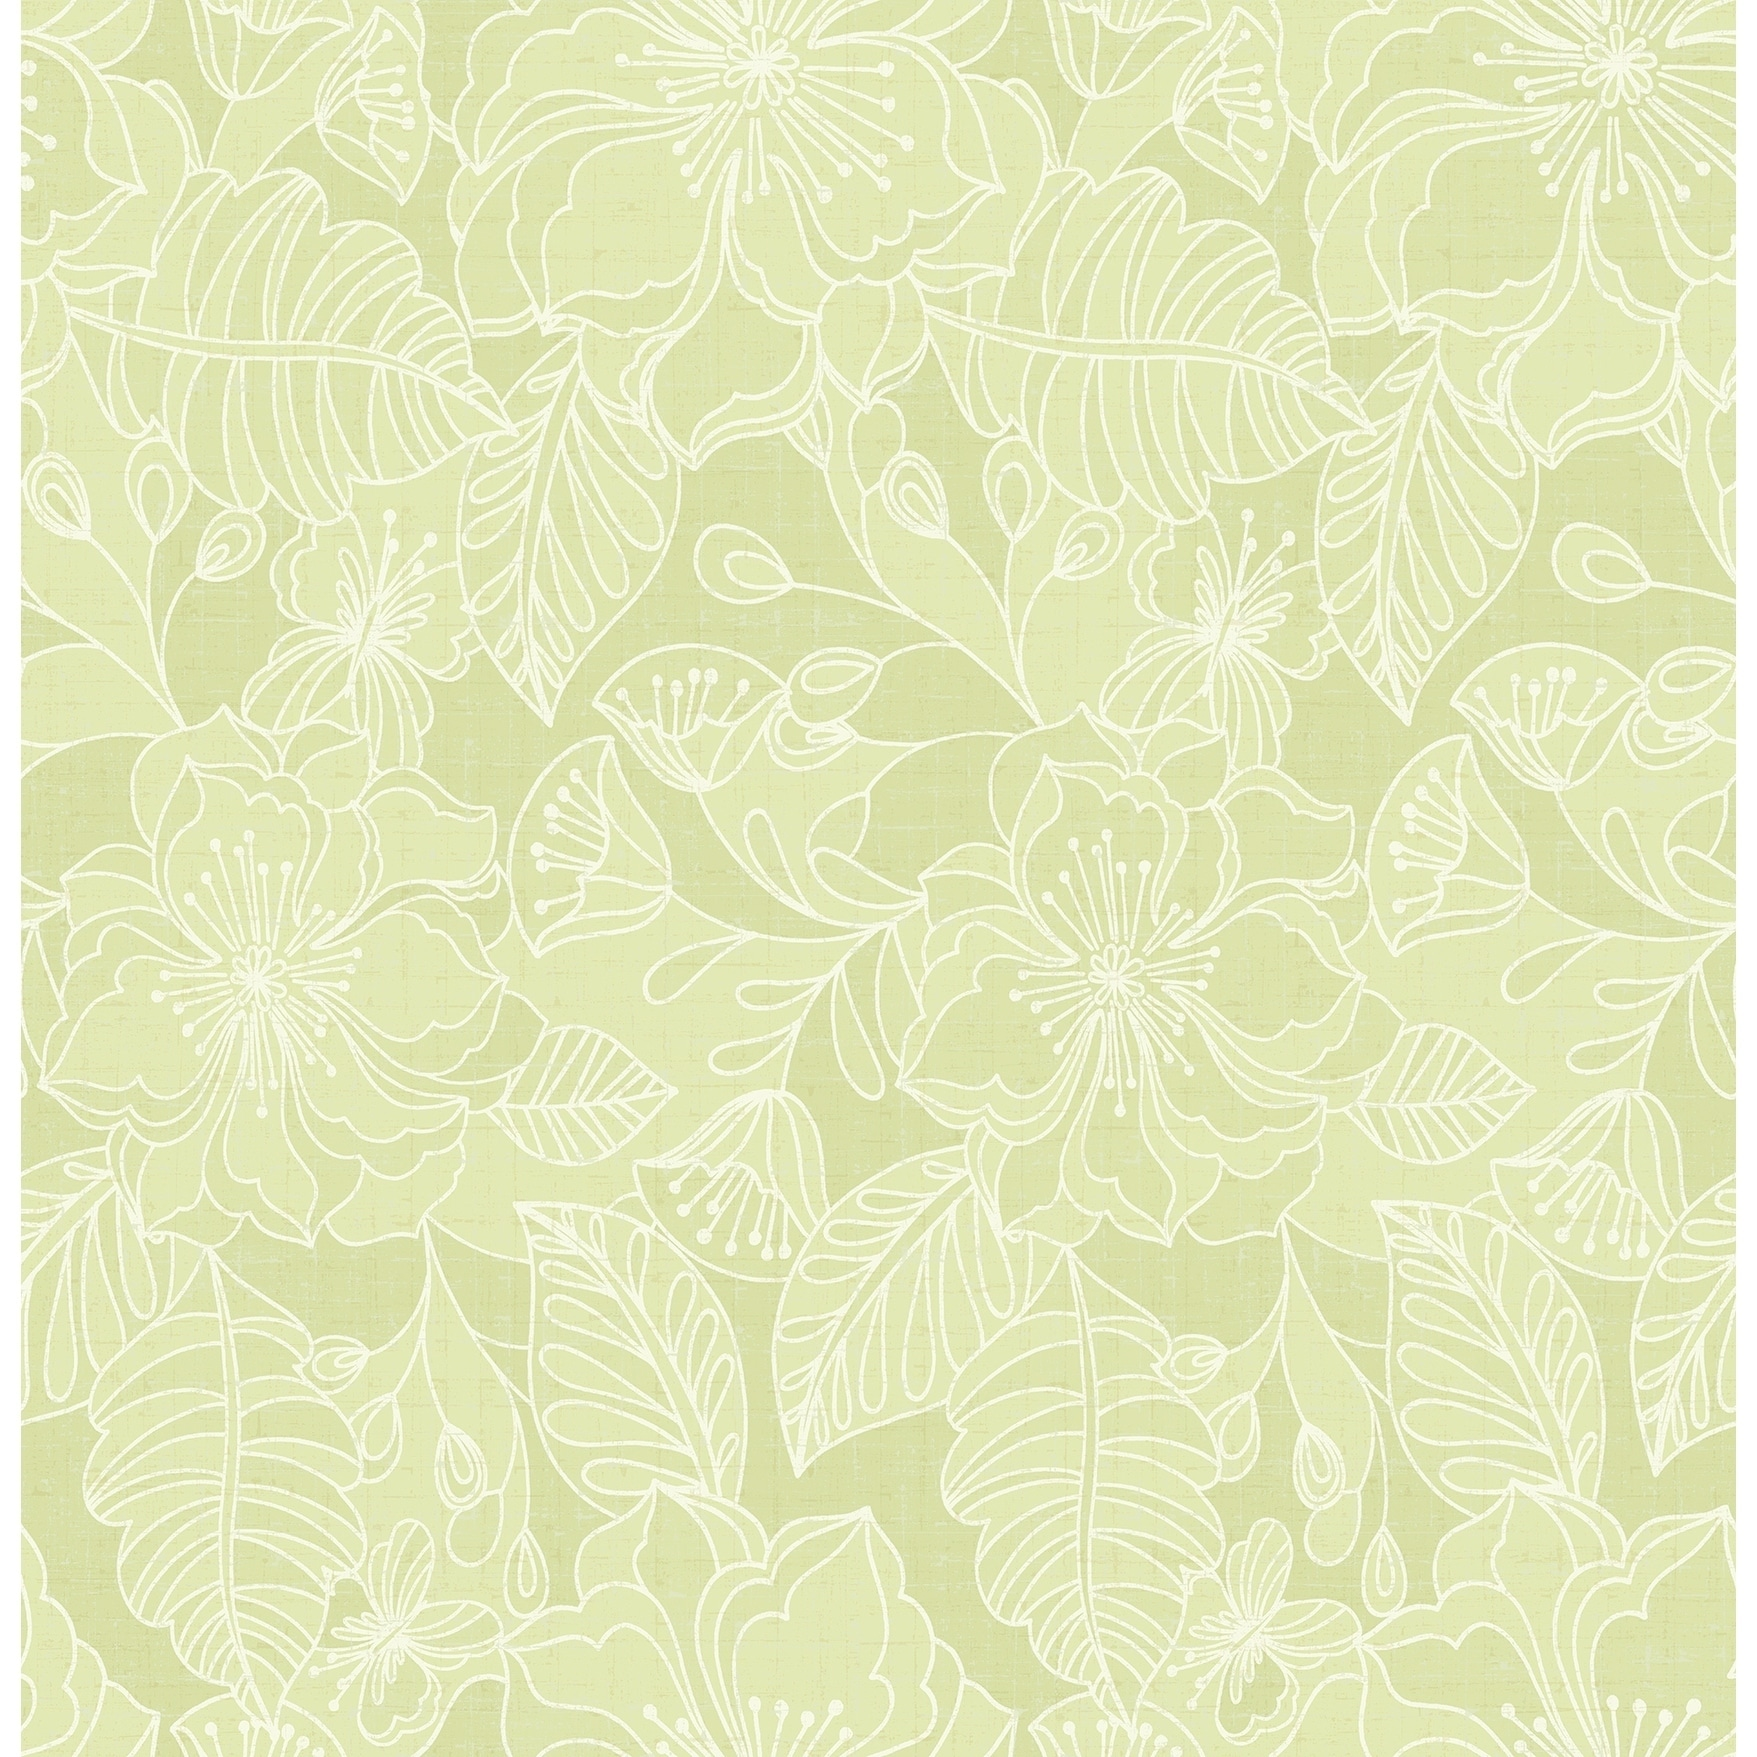 Shop Menard Floral Wallpaper 20 5 In X 33 Ft About 56 4 Square Feet Overstock 30621436